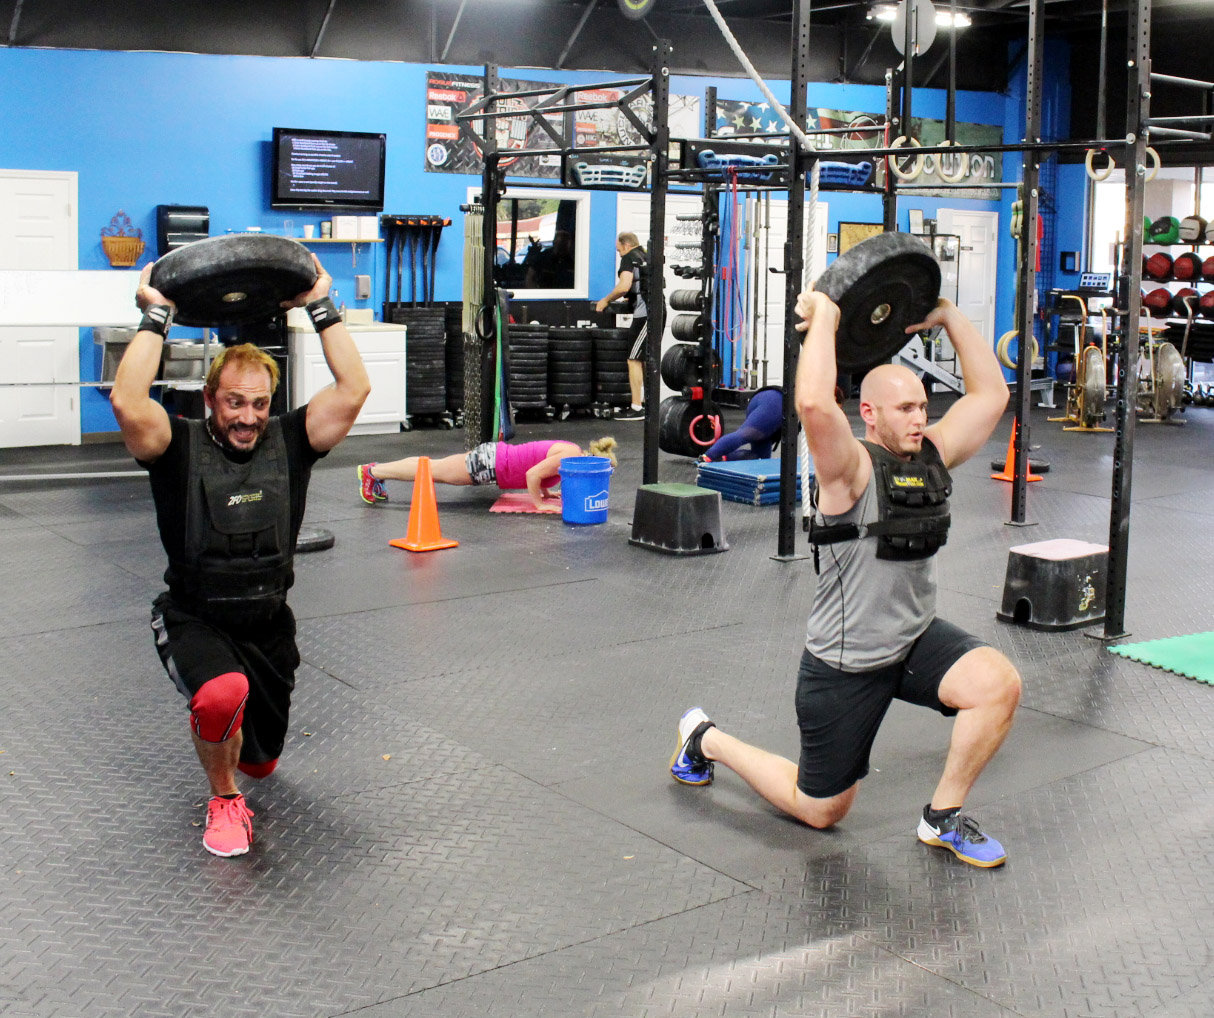 """Breaking out the weighted vests to get ready for """"Murph"""" soon"""